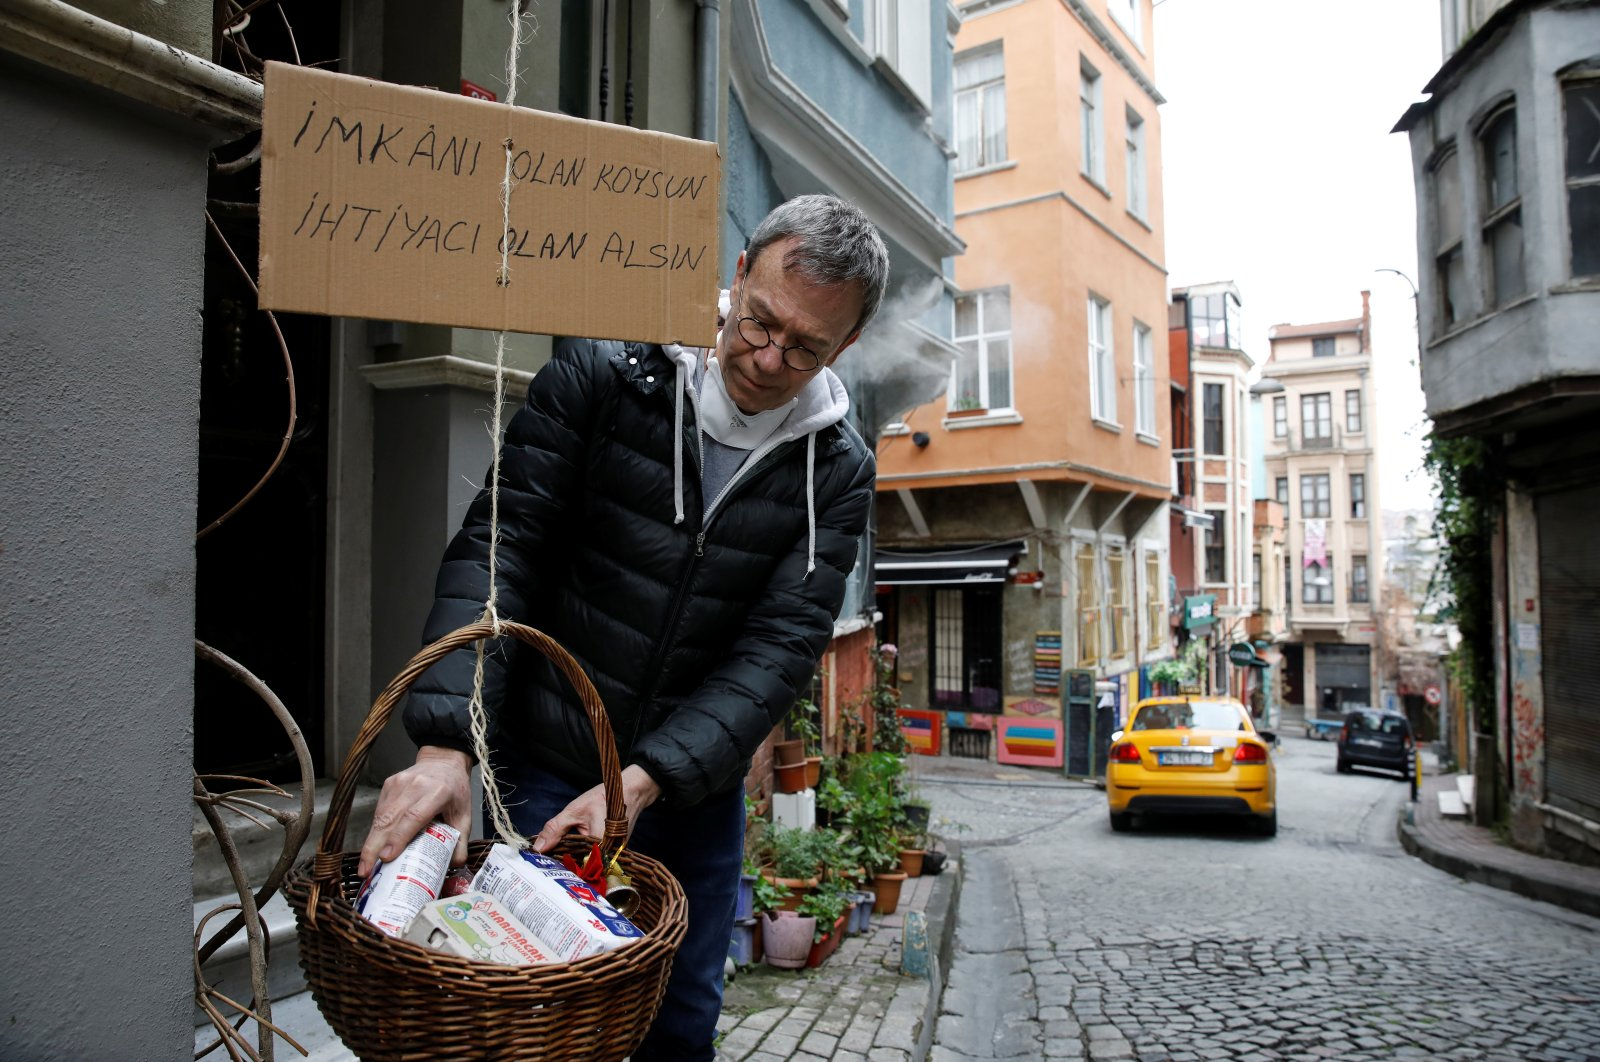 """Jeffrey Tucker adds items to a basket he lowered from his window as a sign of social solidarity with poor and homeless people in need amid the coronavirus outbreak in Istanbul, Turkey, April 3, 2020. The cardboard reads, """"Those who have the means, add. Those who need, take."""" (Reuters Photo)"""